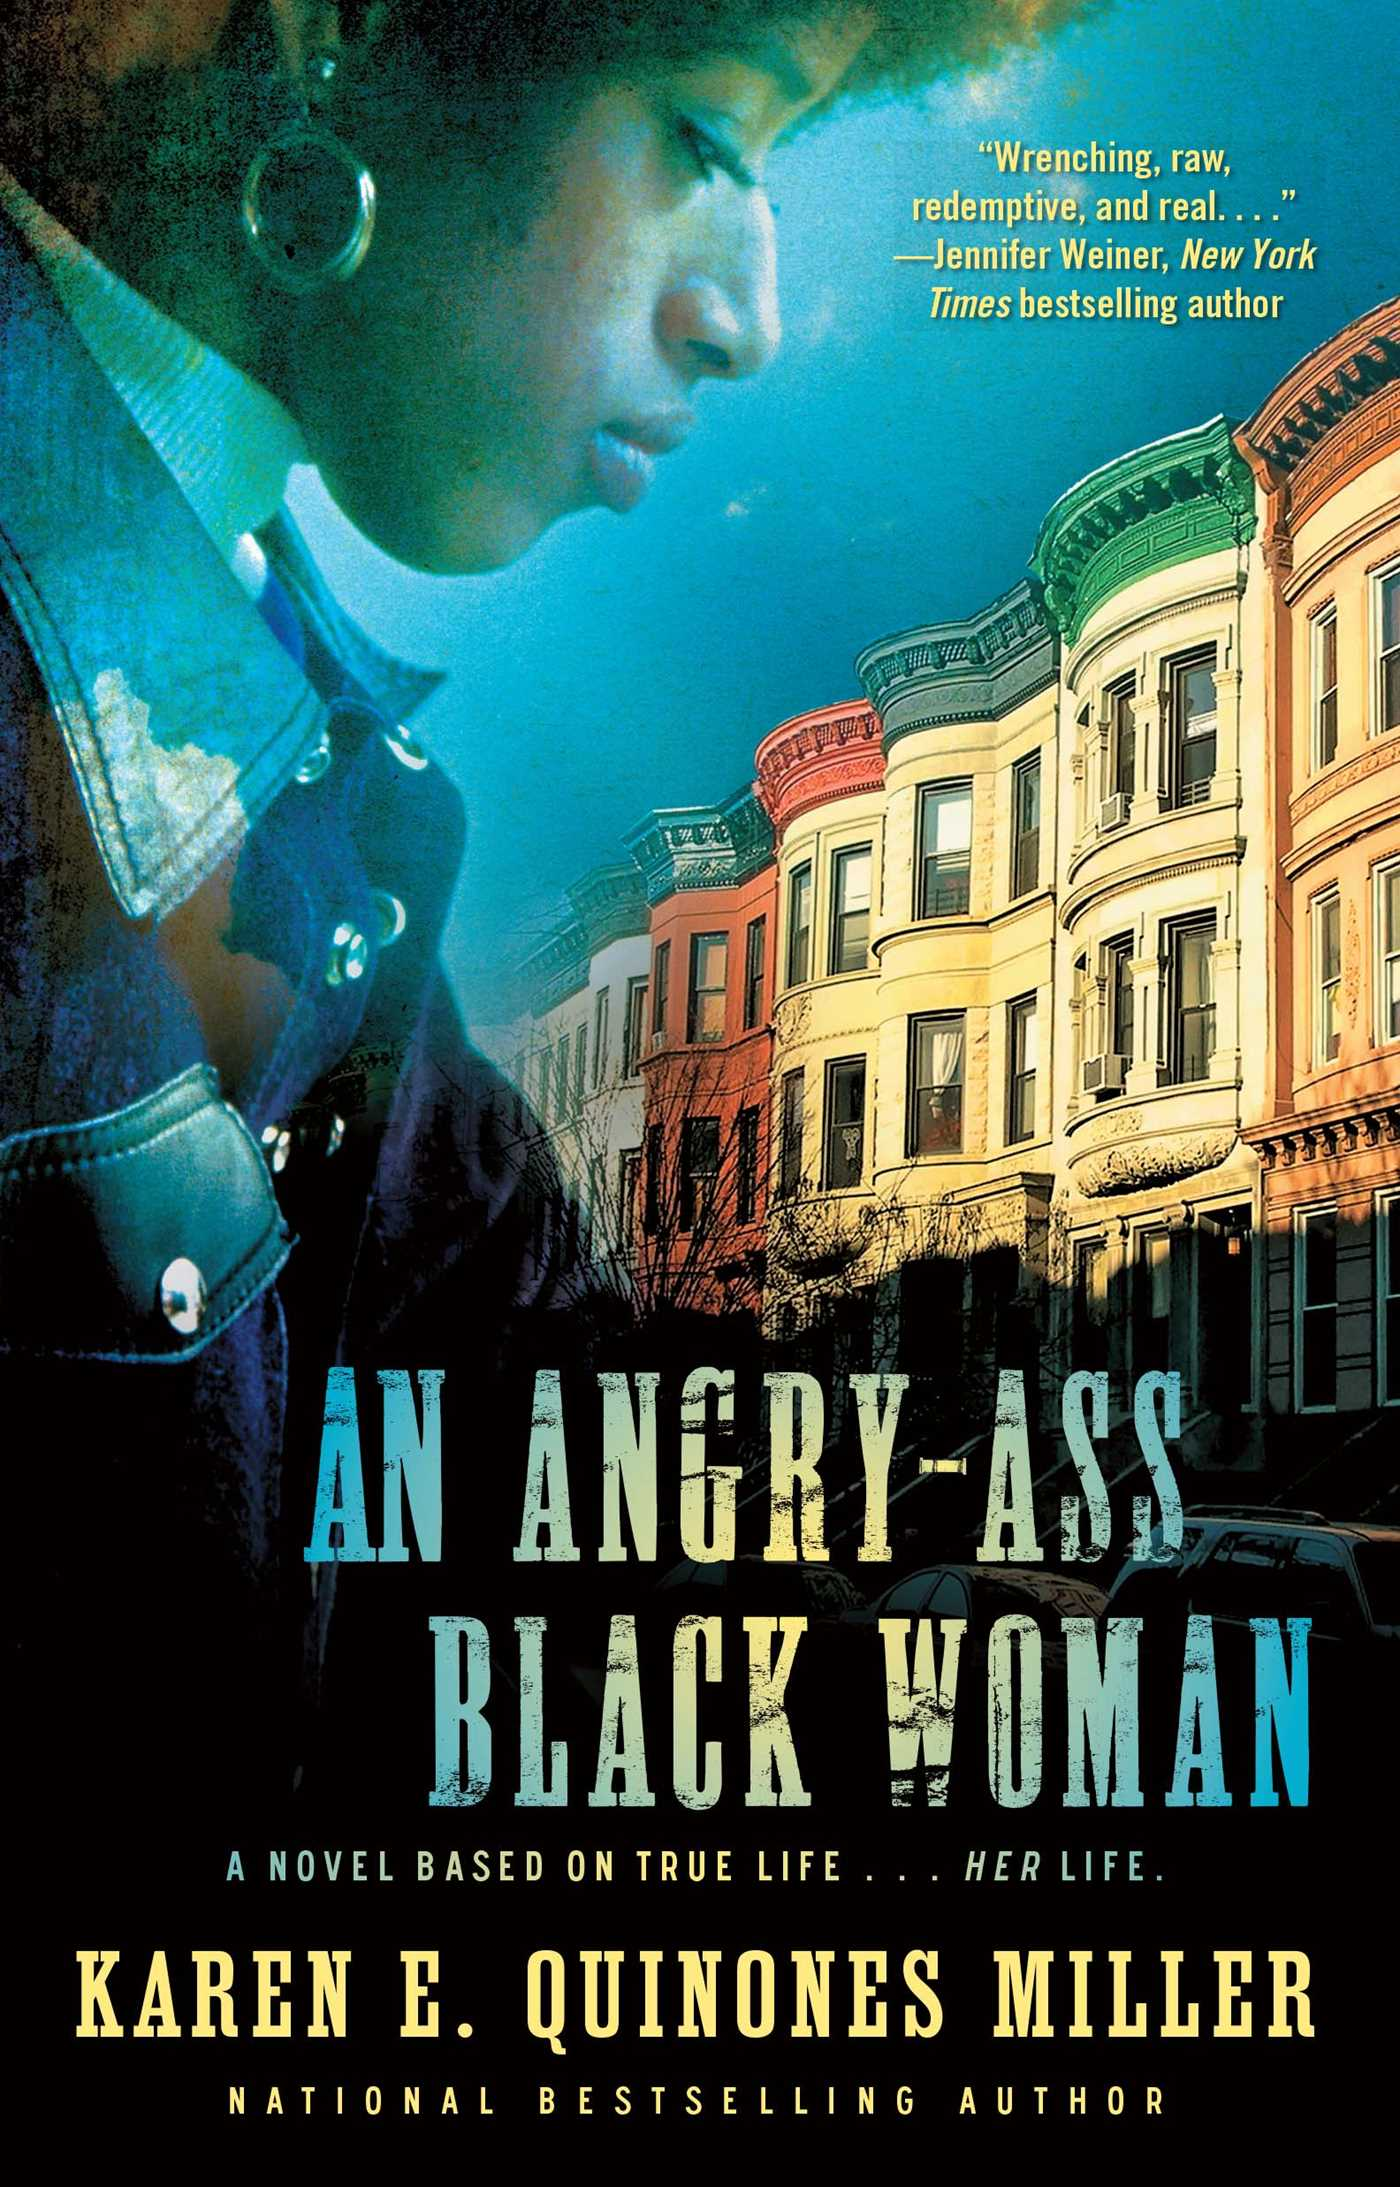 An-angry-ass-black-woman-9781451608991_hr